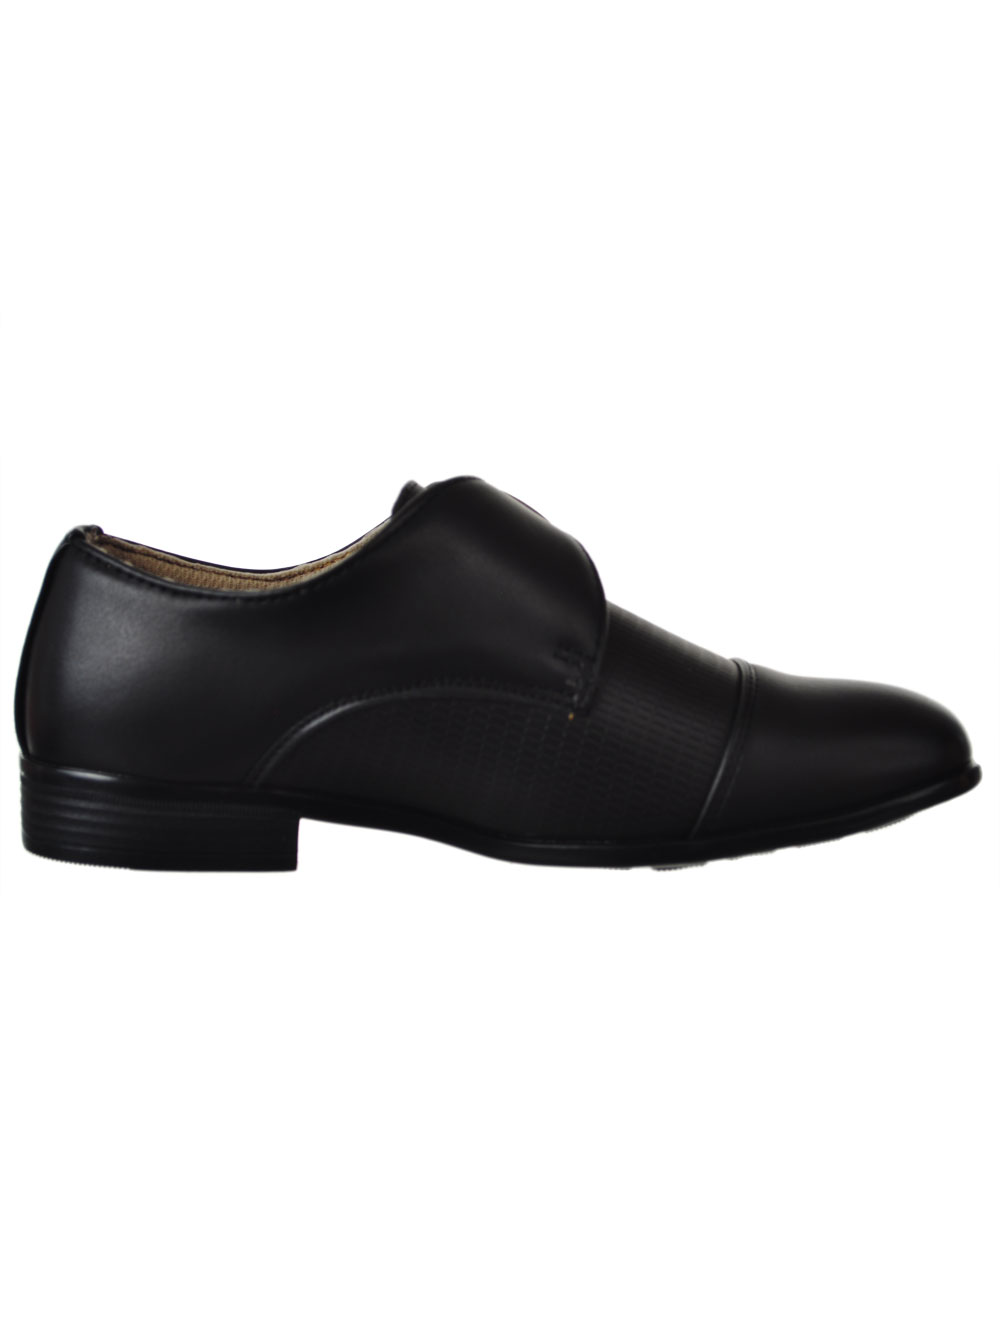 Easy Strider Boys/' Wingtip Dress Shoes Sizes 7-8